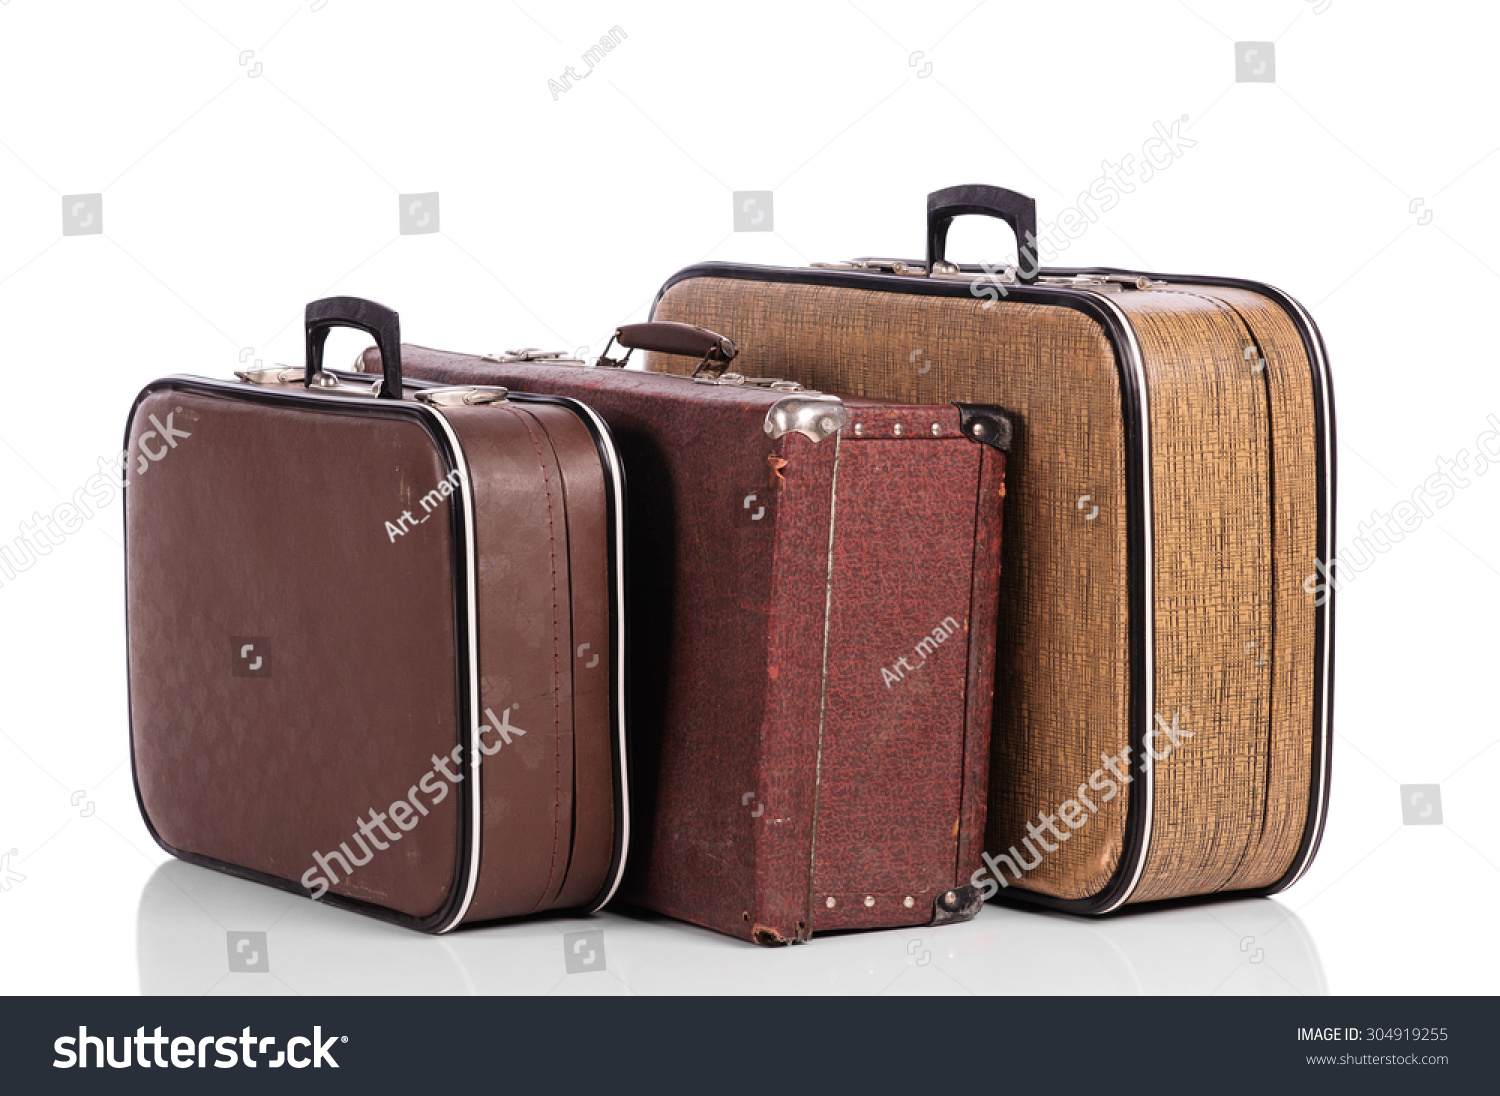 Old Vintage Suitcase Isolated On White Stock Photo 304919255 ...